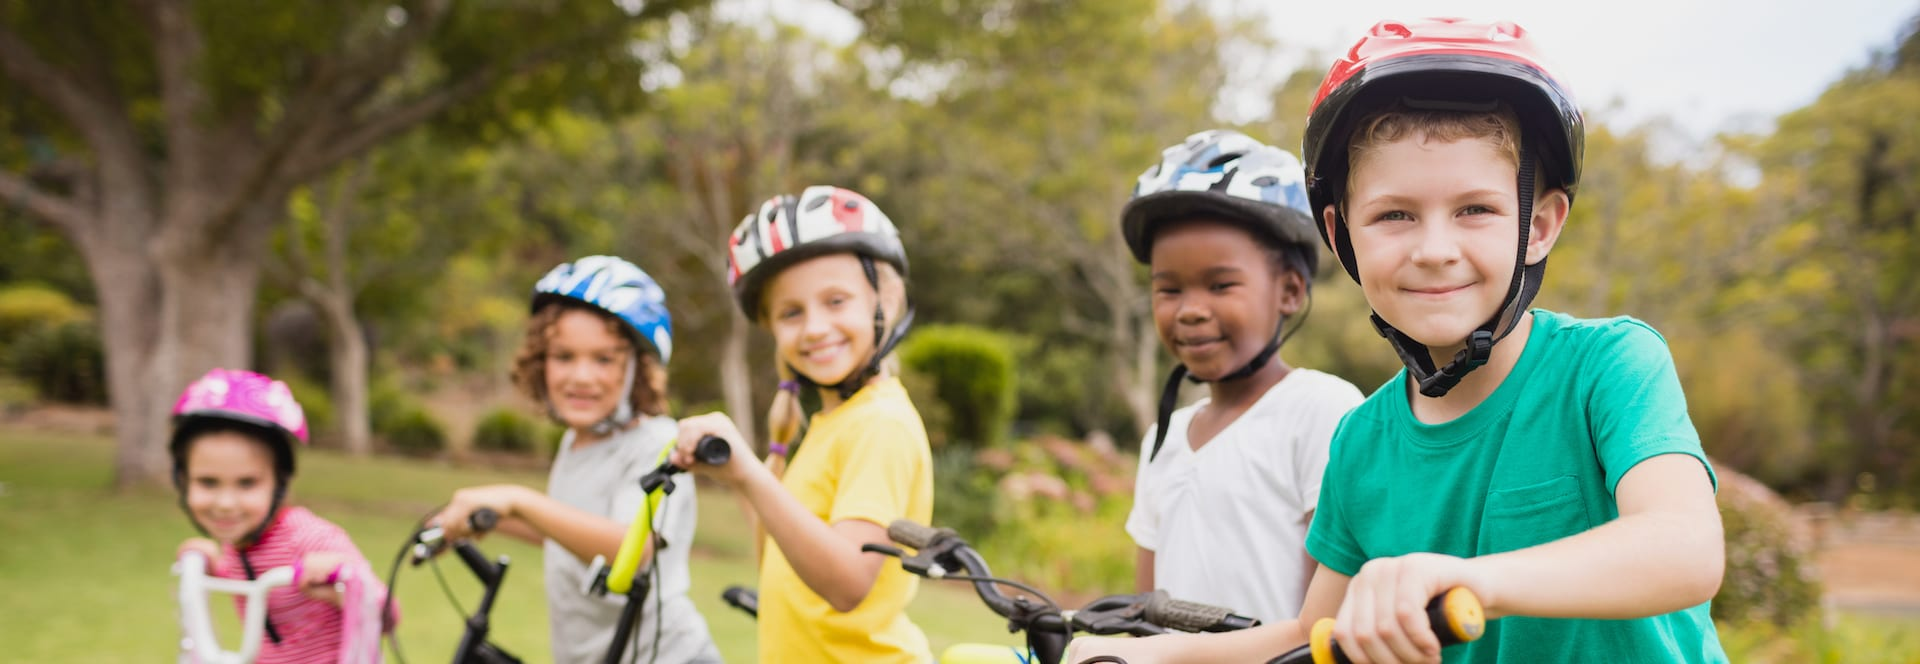 THE TOP 5 BIKE SAFETY TIPS FOR GEORGIA CHILDREN